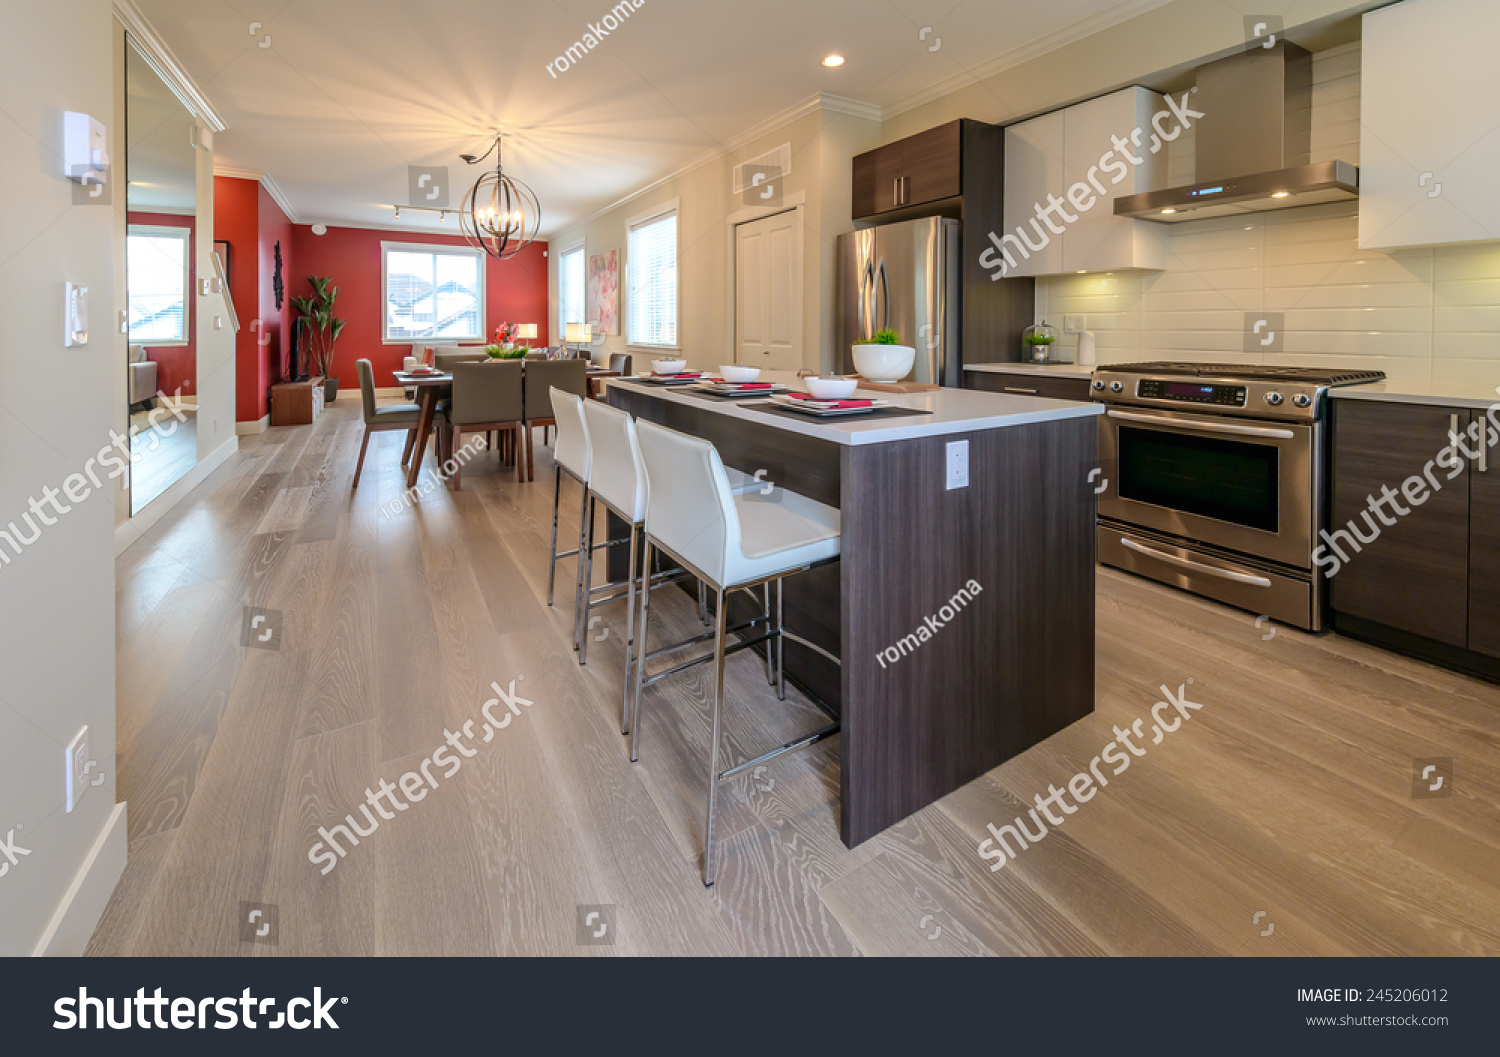 Nicely Decorated Kitchen Counter Table Iceland Stock Photo